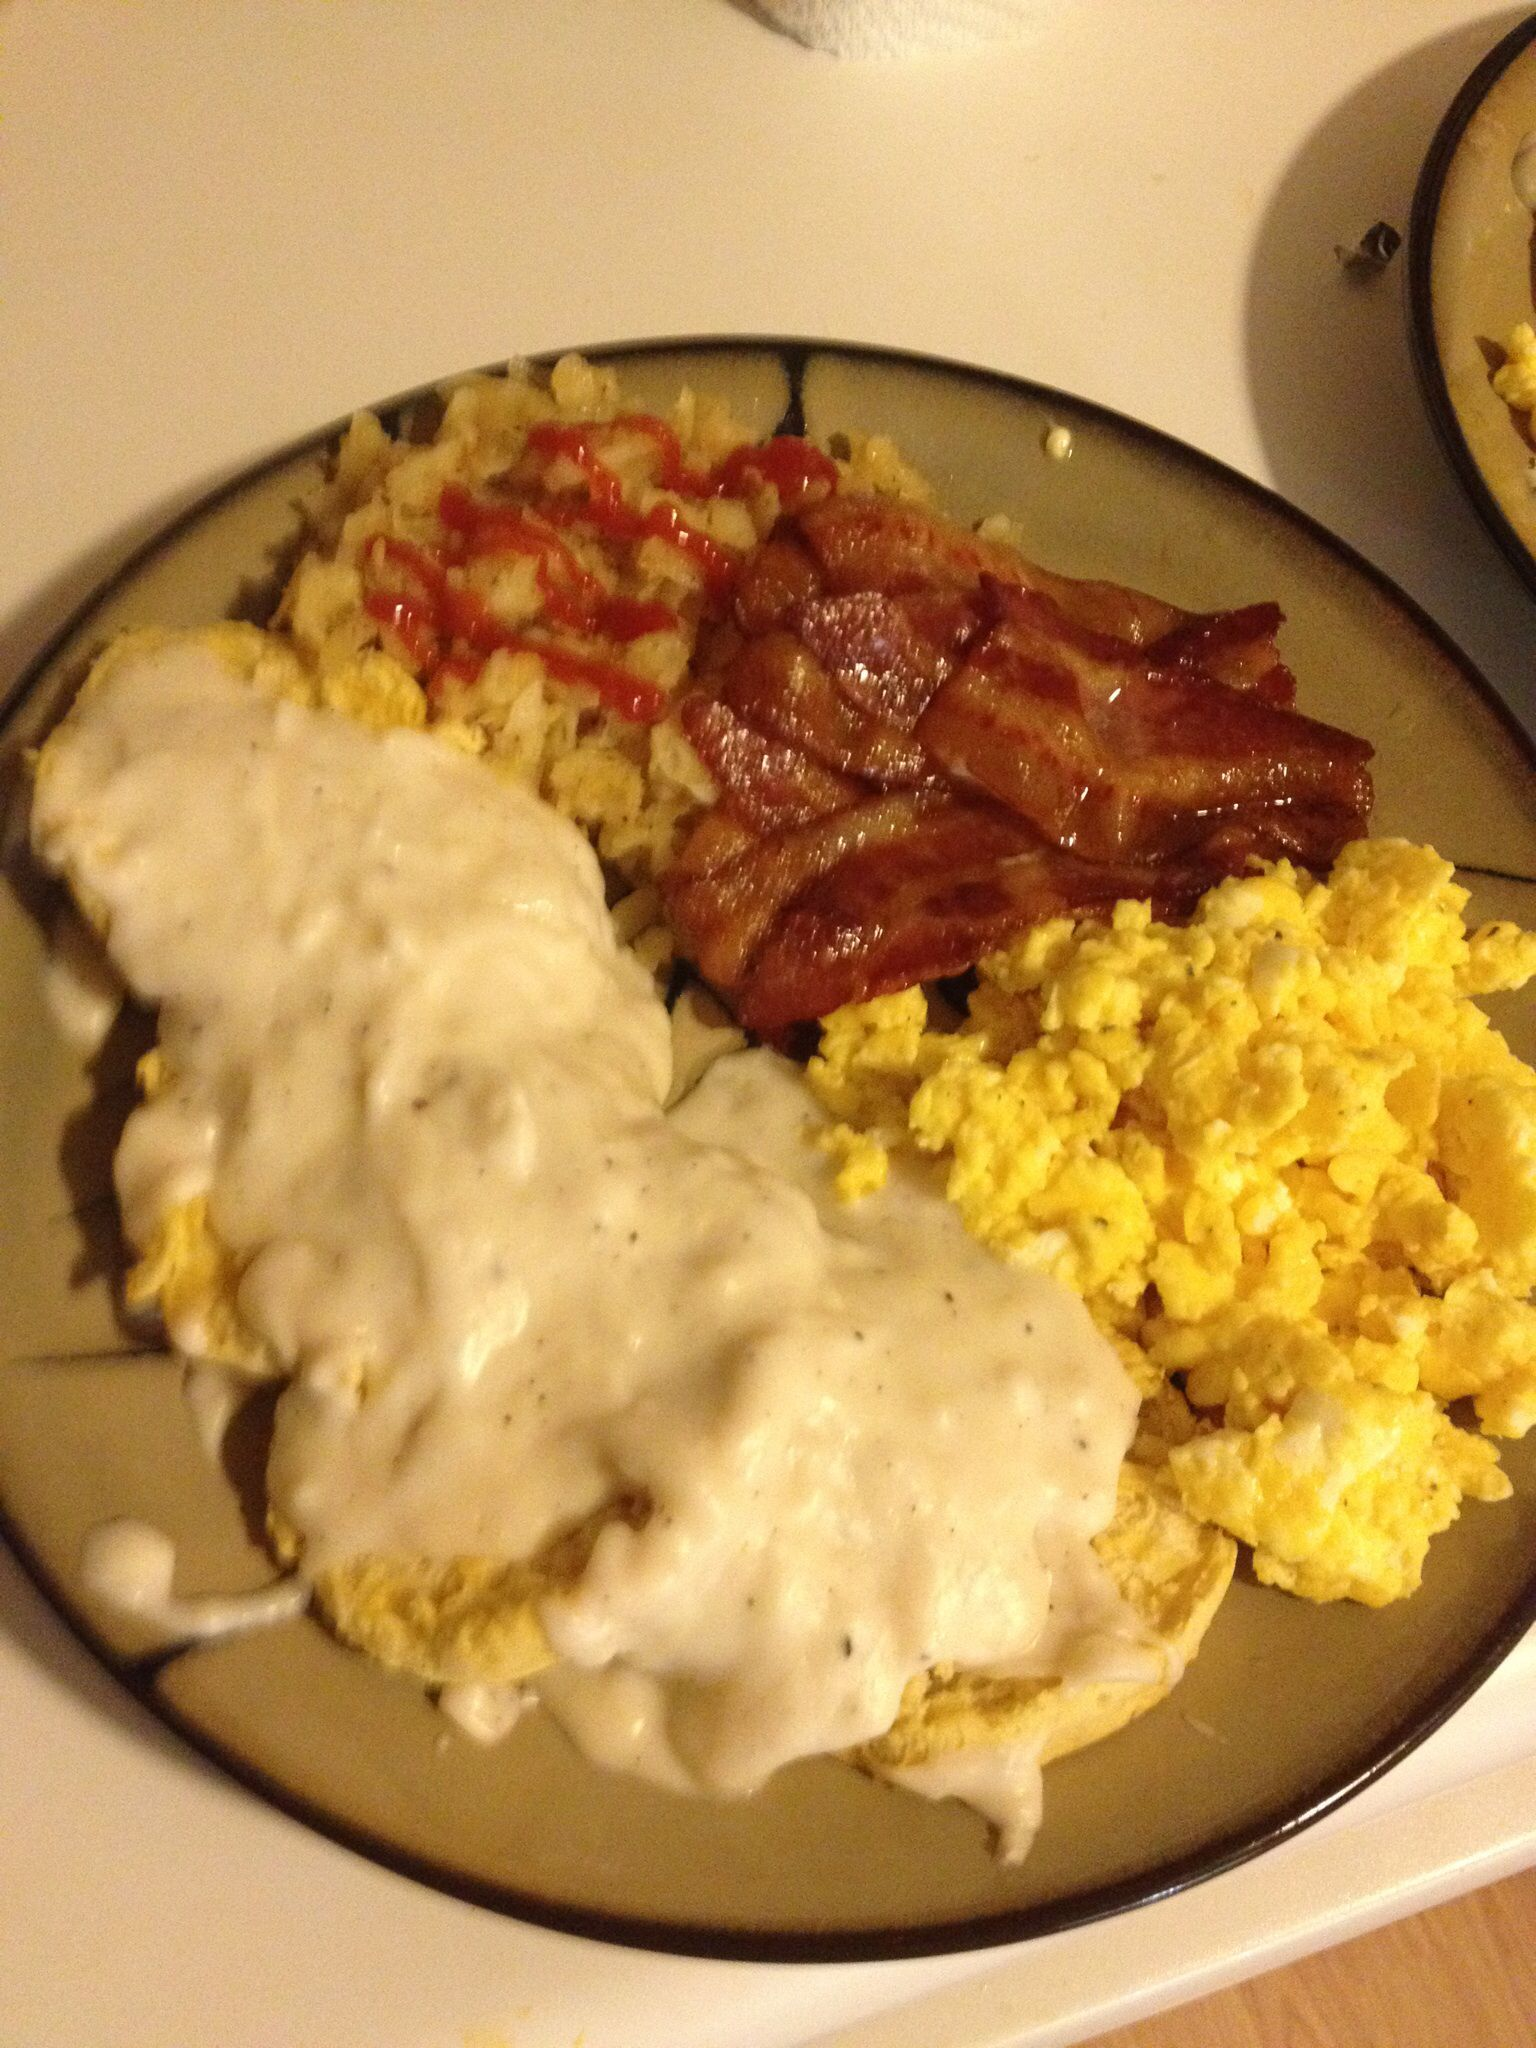 Biscuits And Gravy Scrambled Cheese Eggs Bacon And